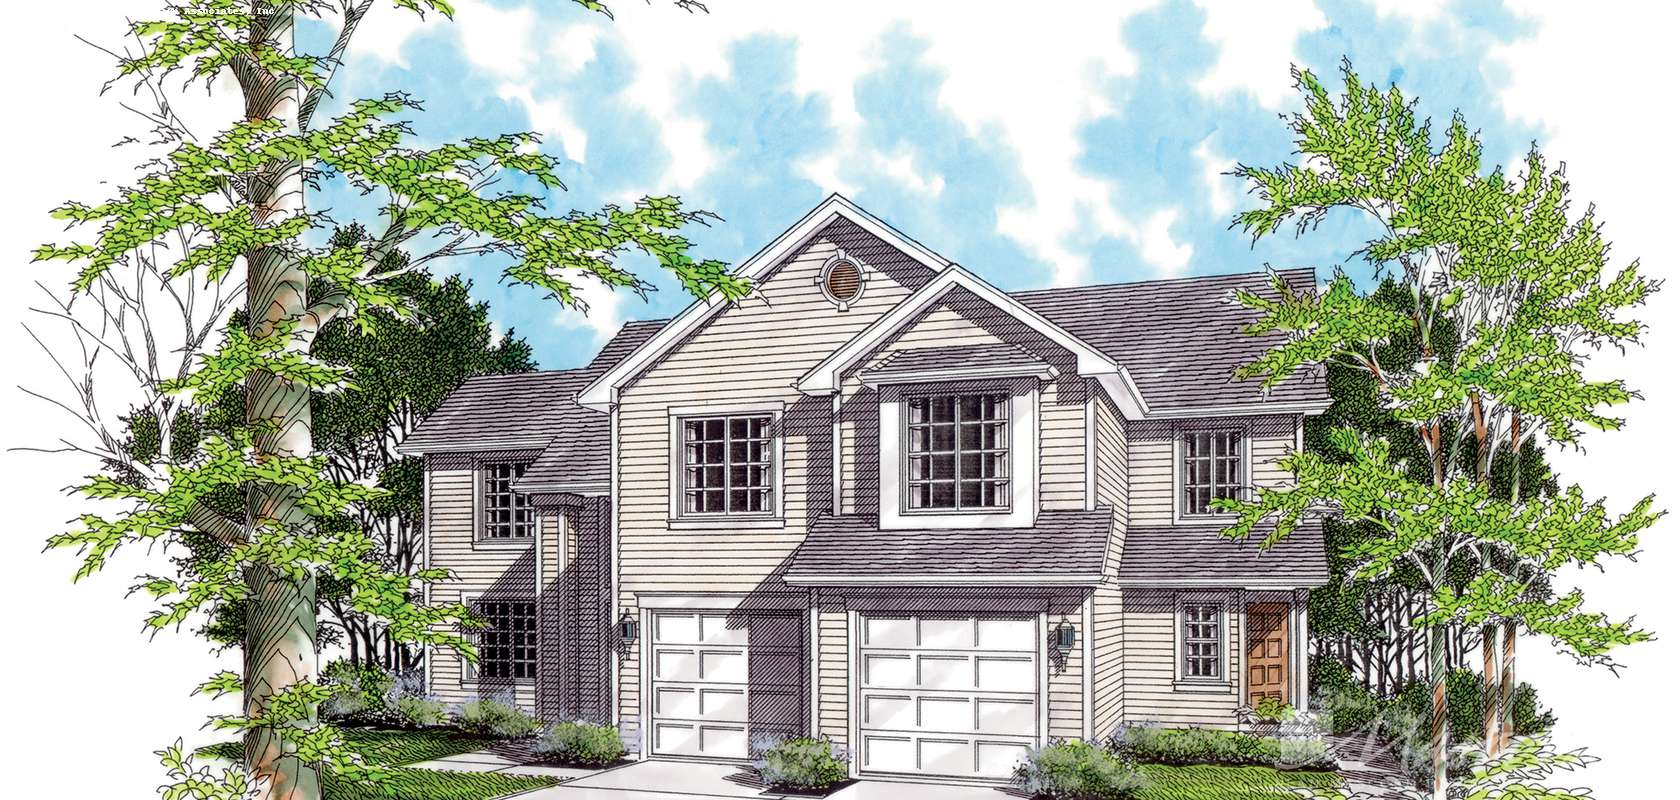 Mascord House Plan 4015: The Birchfield